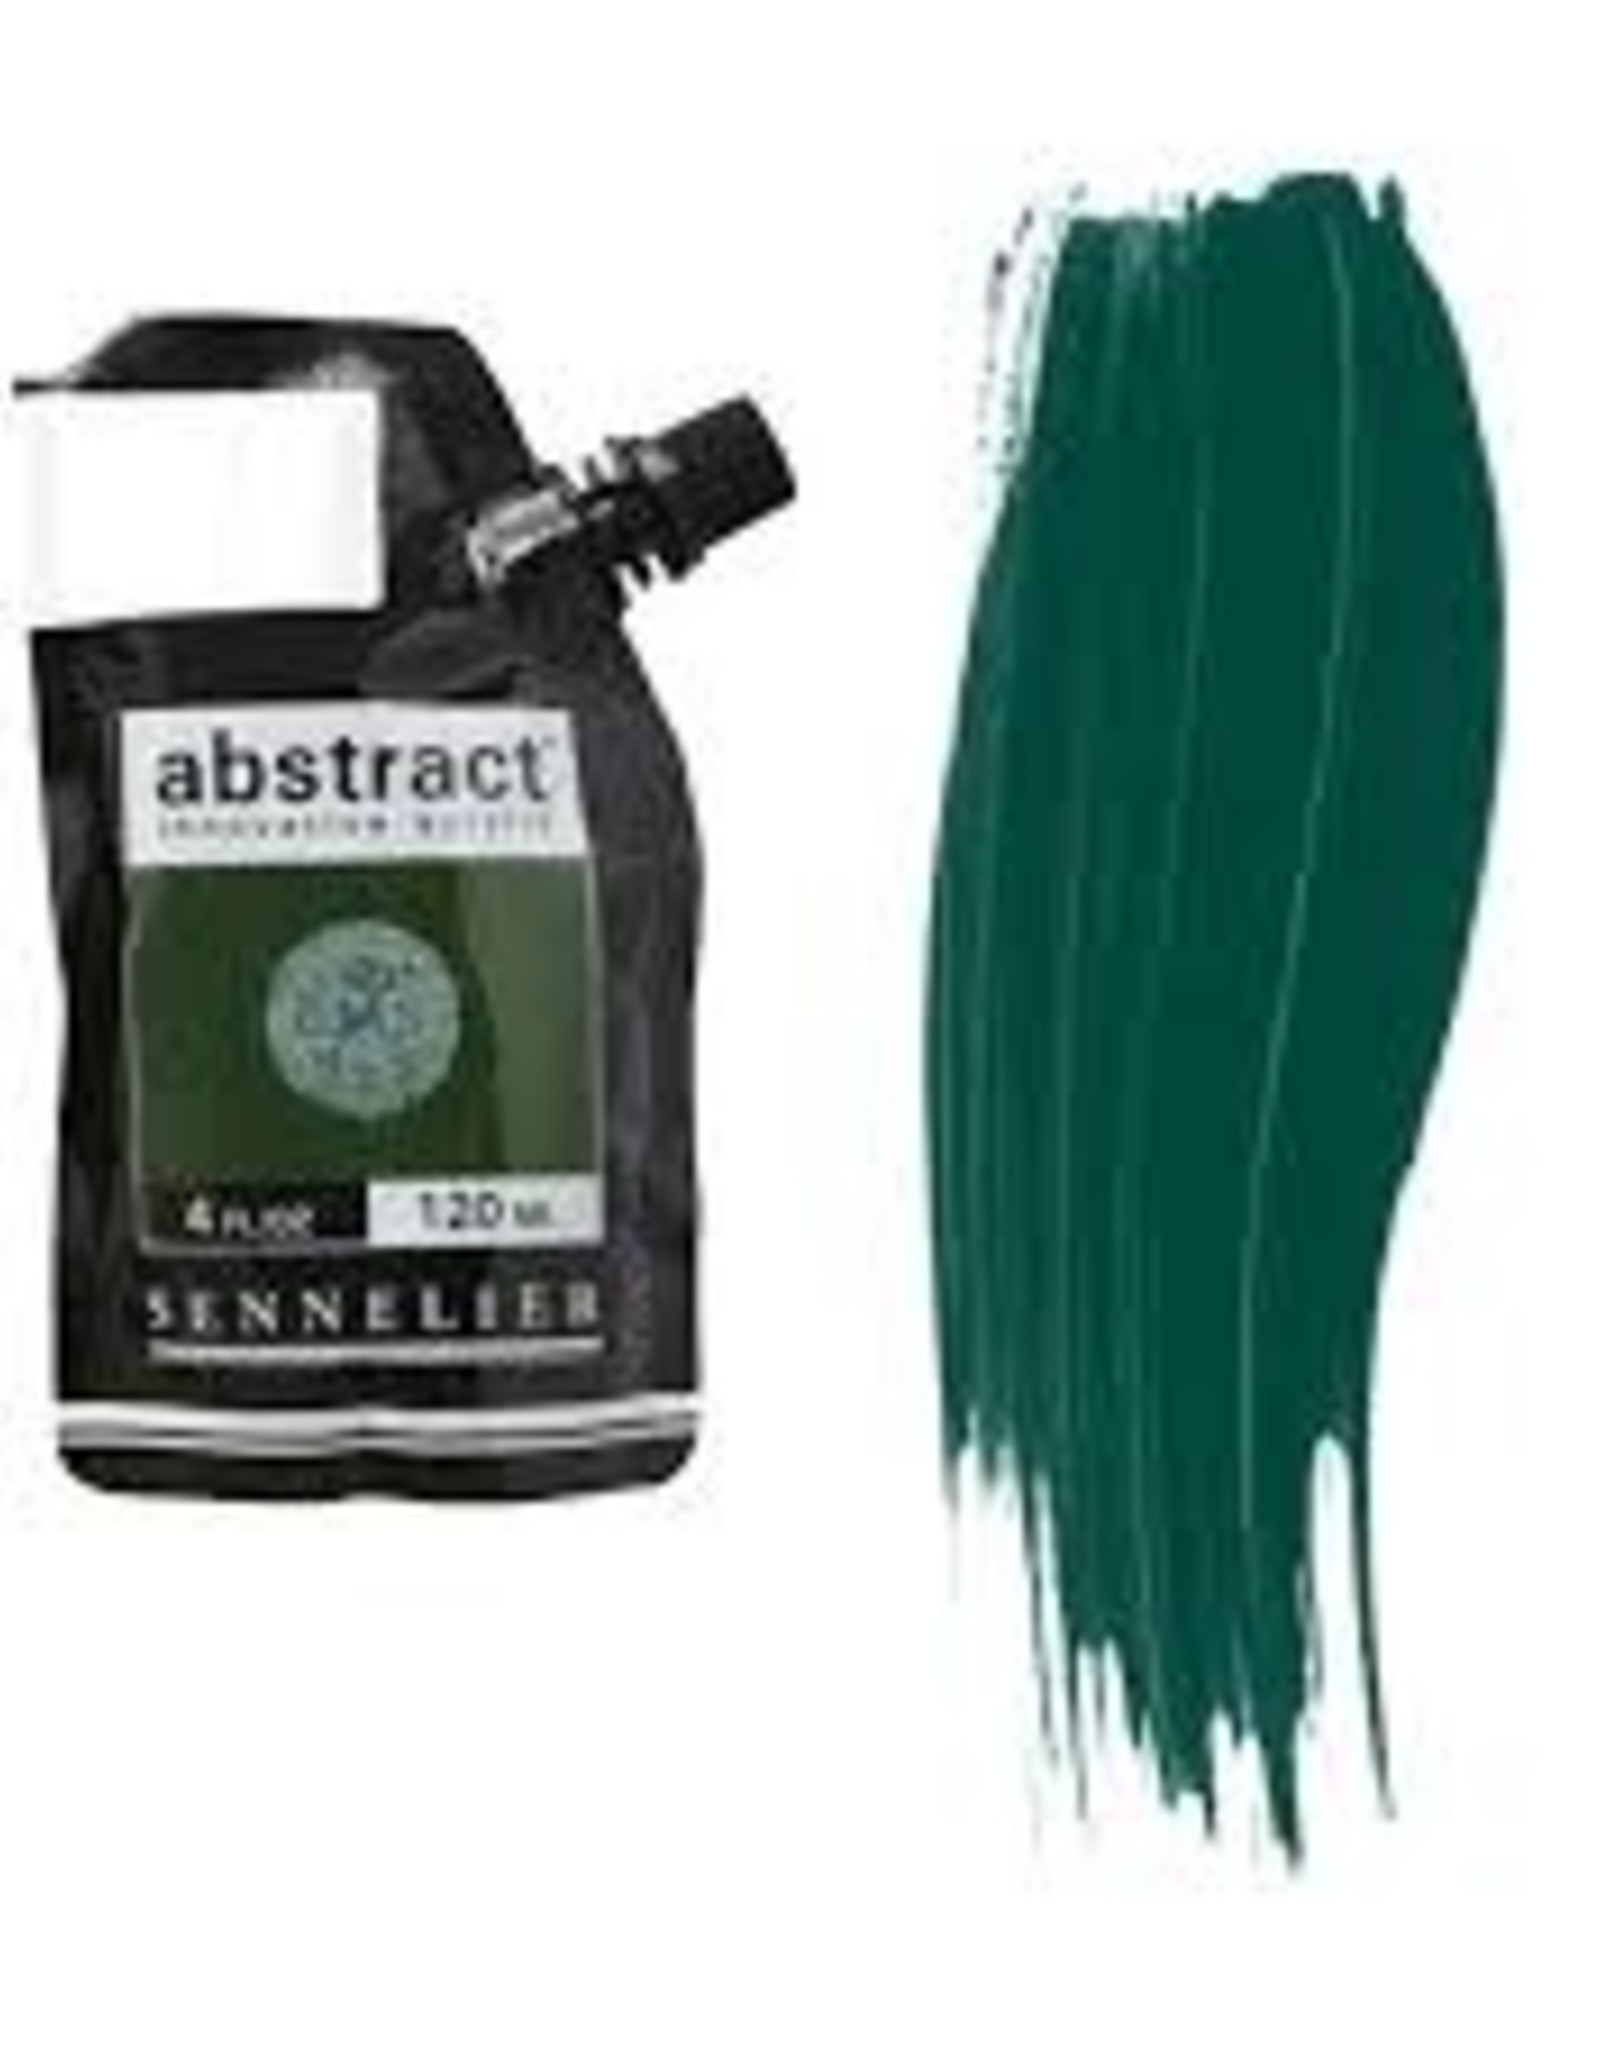 Sennelier Abstract 120ml Phthalo Green